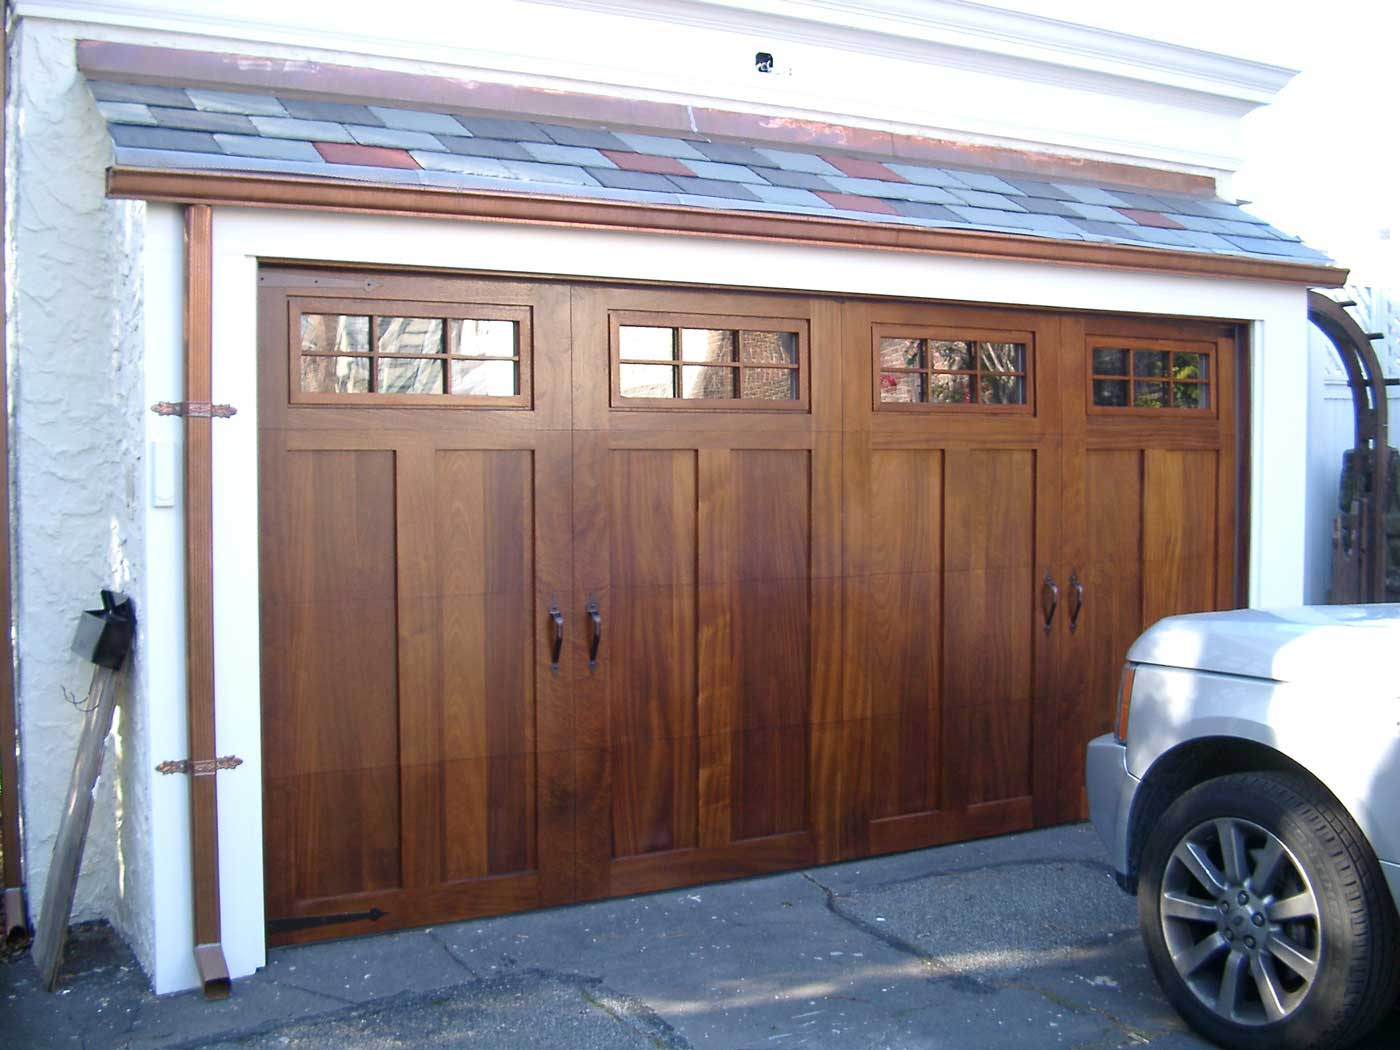 Commercial & Residential Overhead Garage Door Installation New York